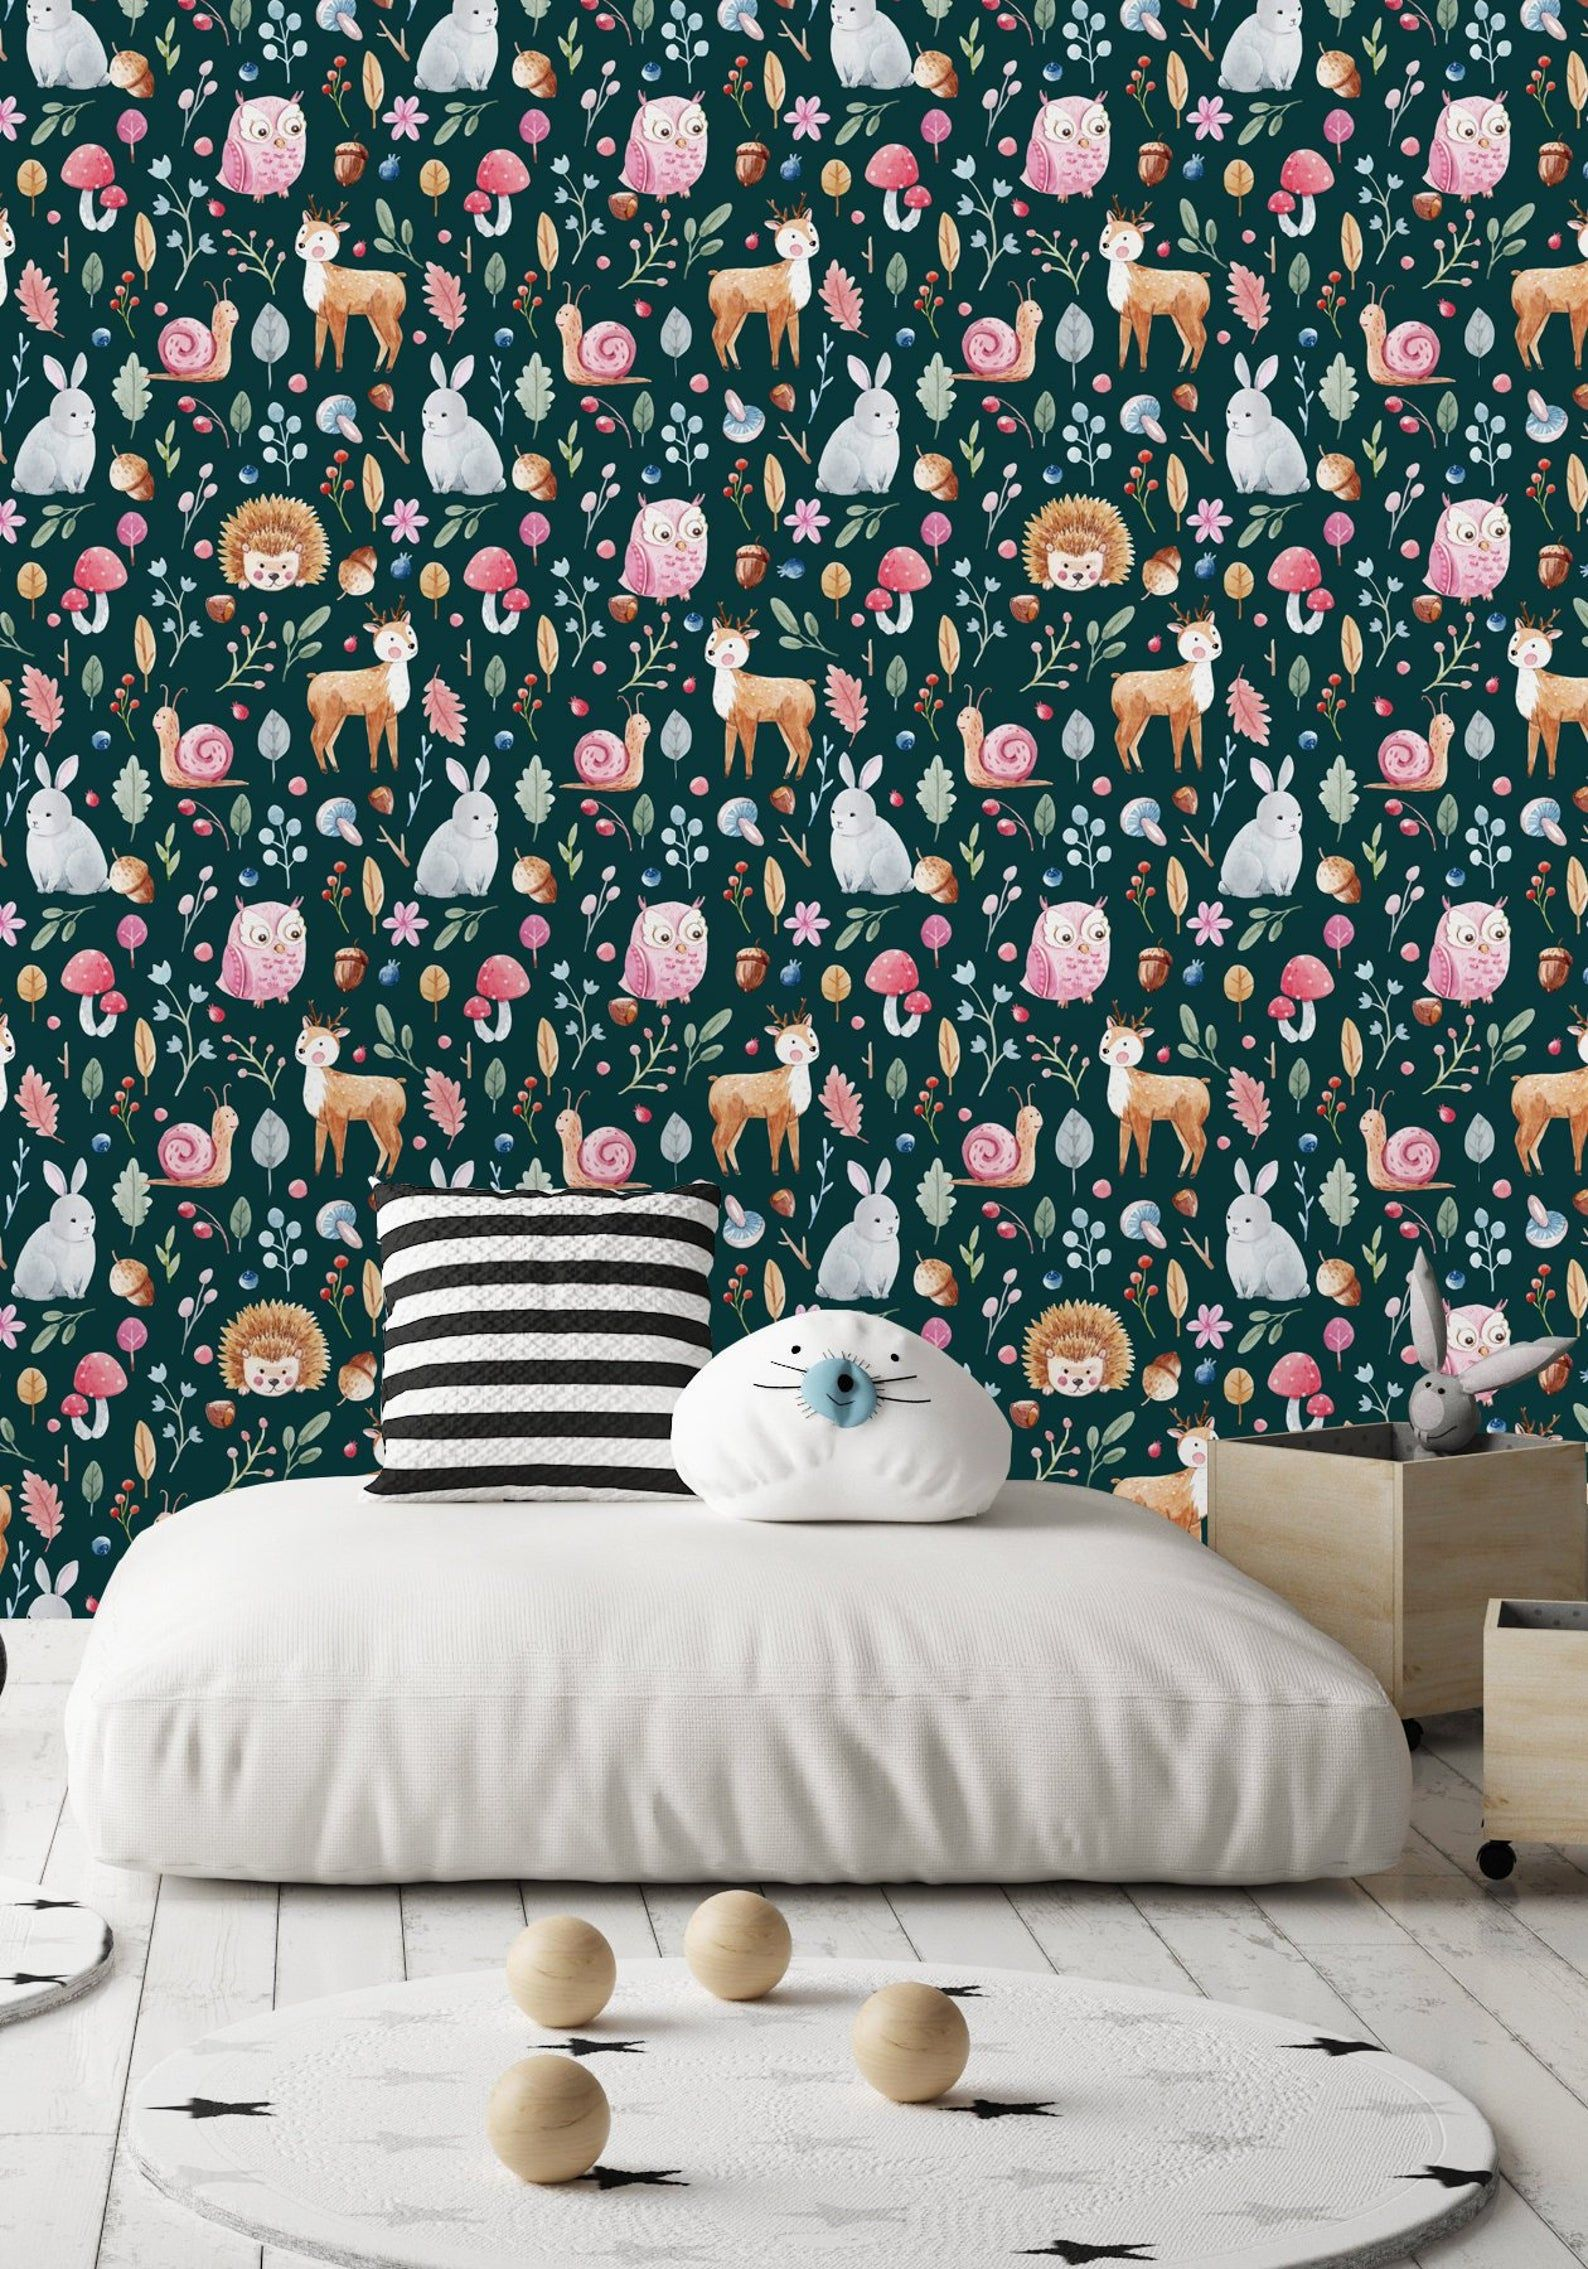 Fairy Forest With Animals And Plants Wallpaper Peel And Stick Etsy Plant Wallpaper Wall Wallpaper Peel And Stick Wallpaper